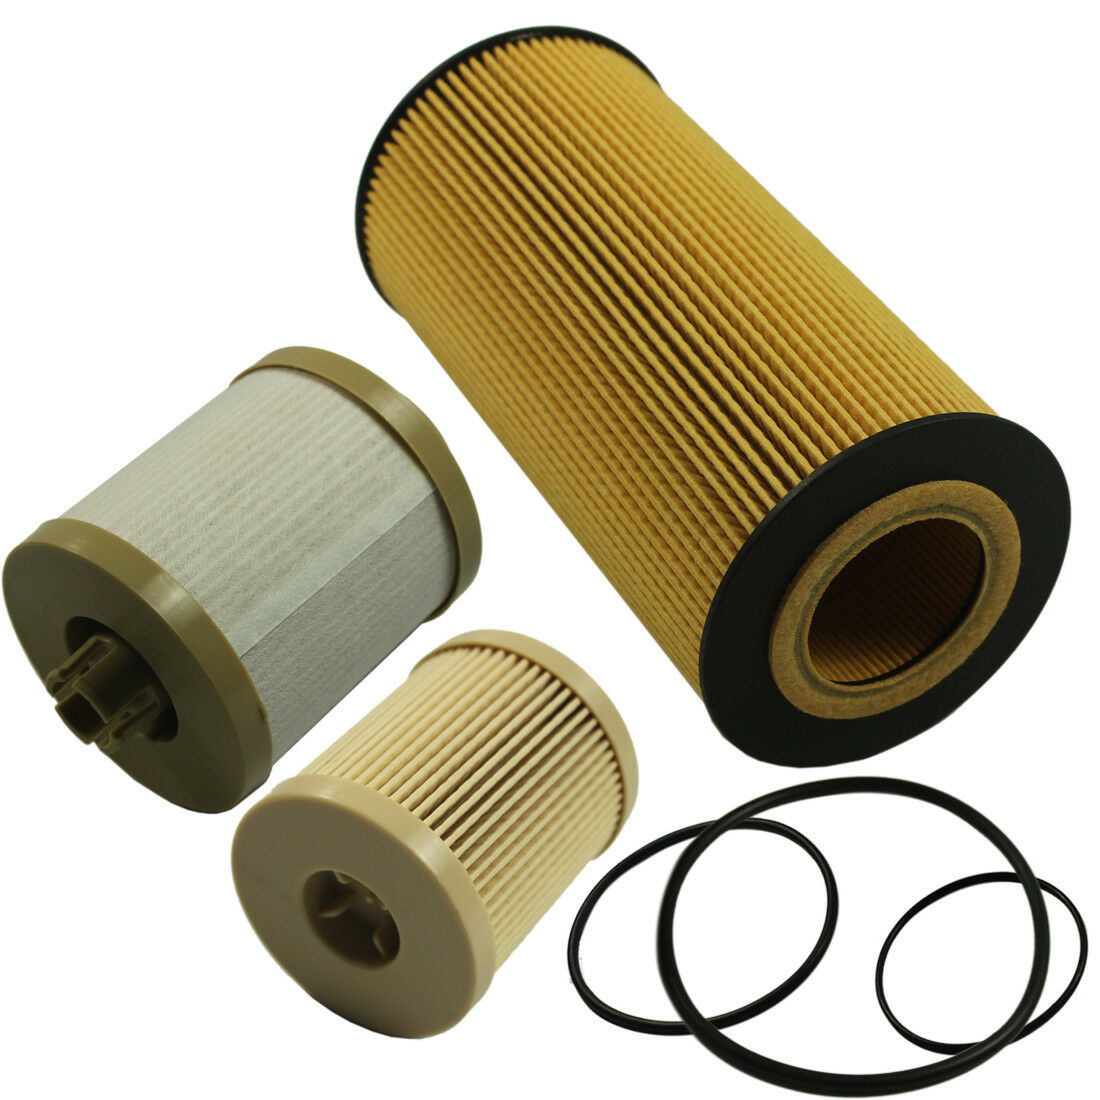 Oil Fuel Filter Kit For Ford Diesel 60 Powerstroke Turbo 2003 6 0 Filters 1 Of 6free Shipping